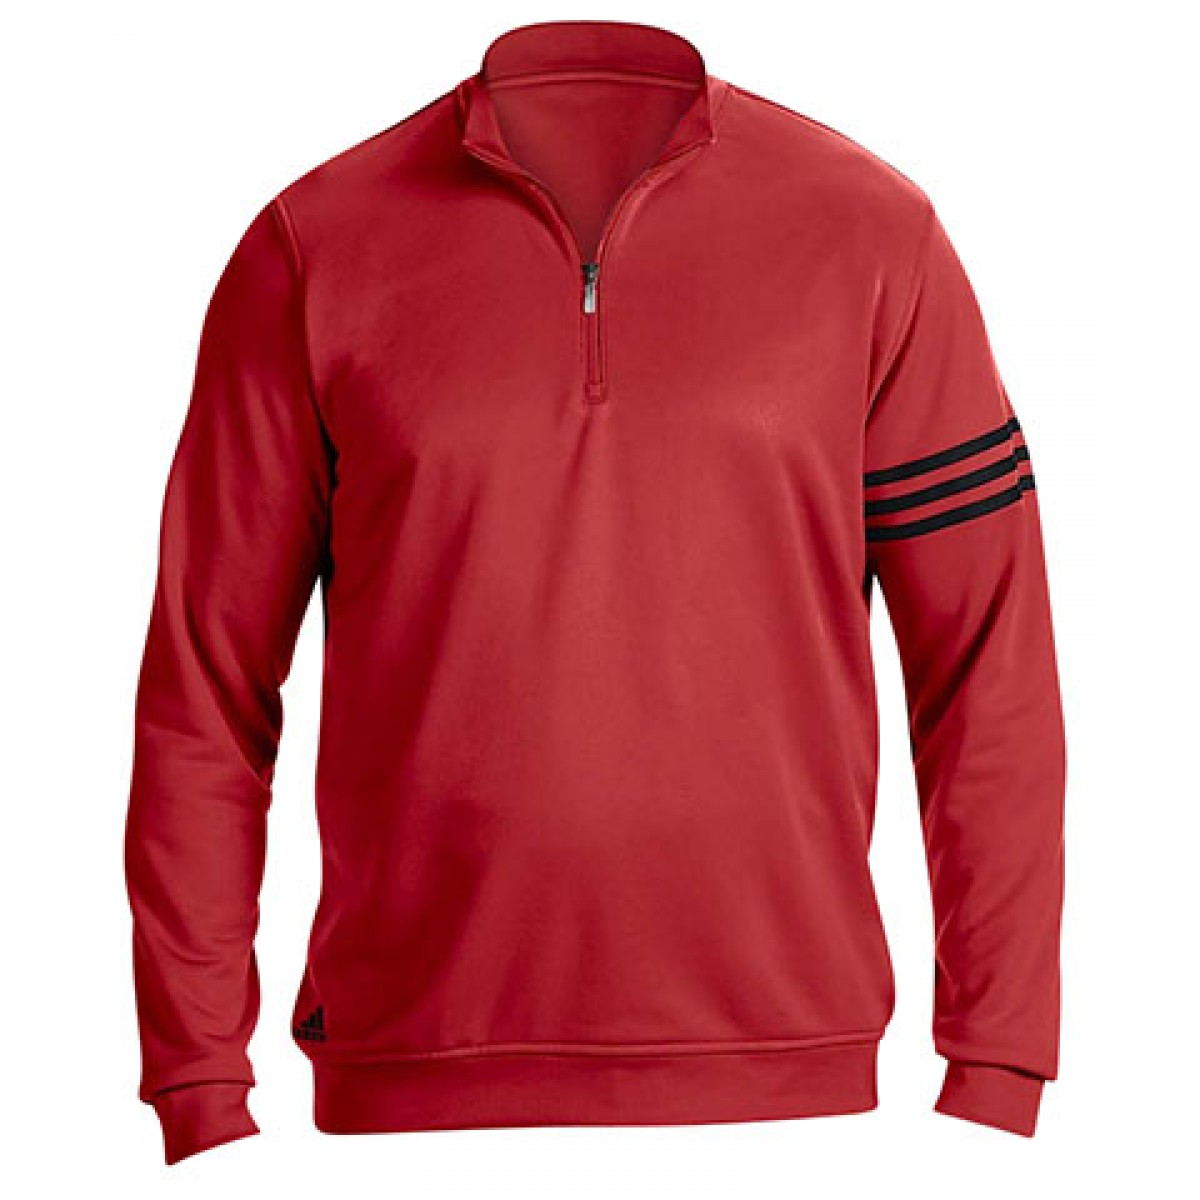 Adidas Men's 3-Stripes Pullover-Red-2XL